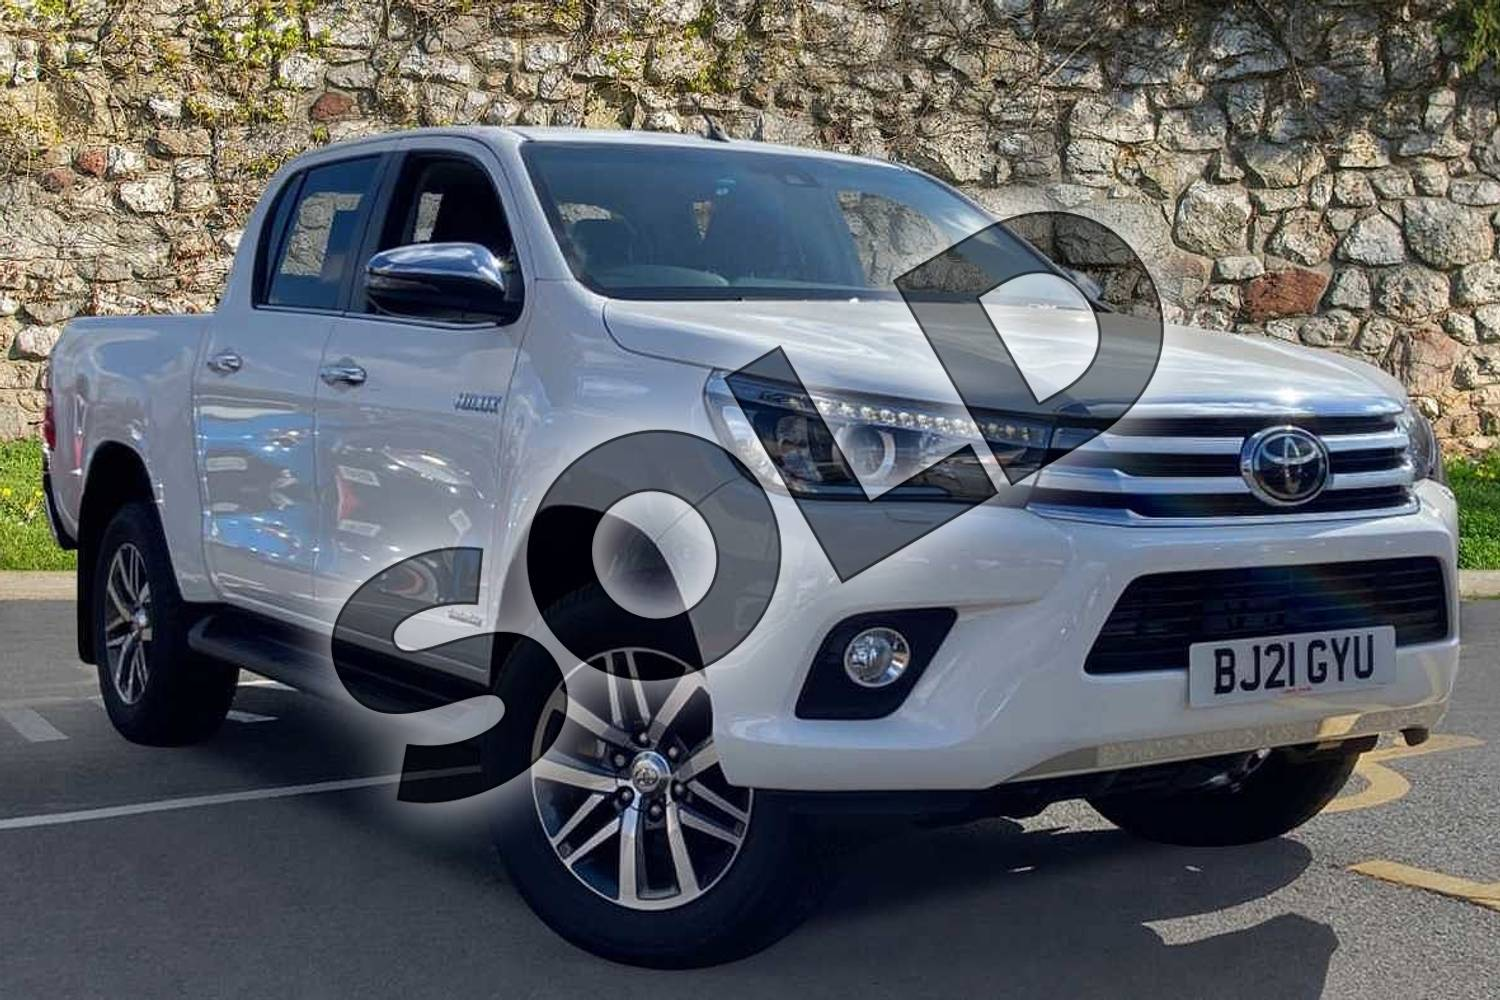 2021 Toyota Hilux Diesel Invincible D/Cab Pick Up 2.4 D-4D Auto in White at Listers Toyota Coventry